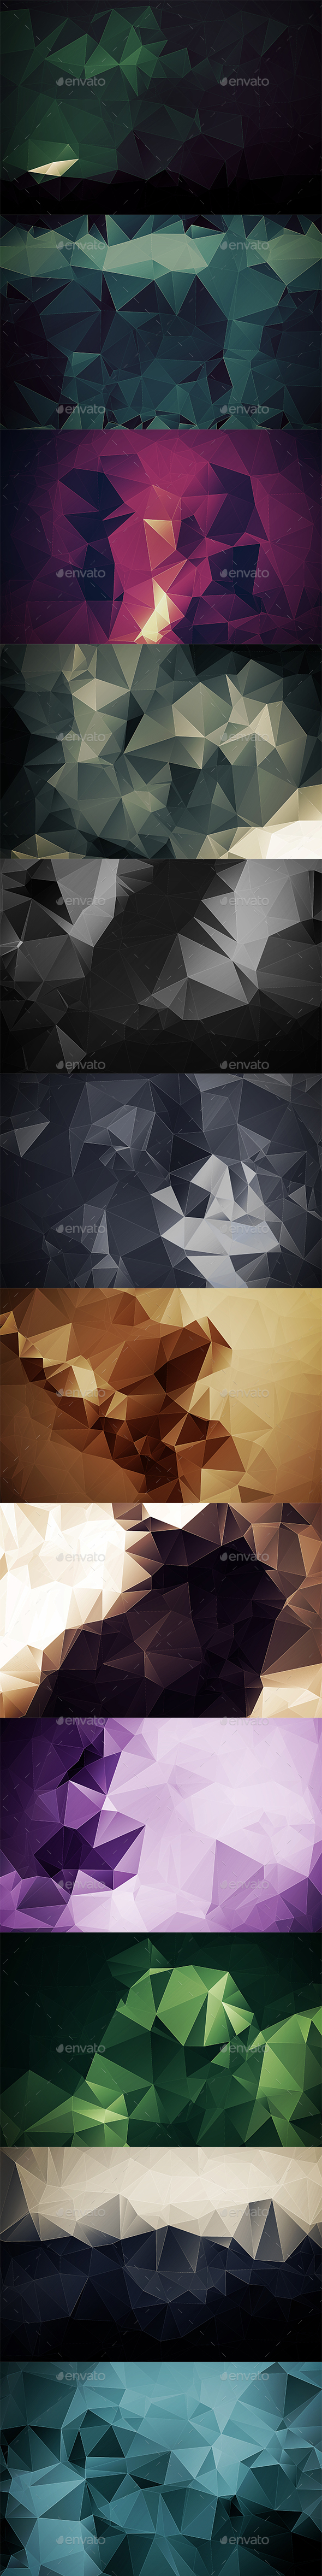 Abstract Polygonal Backgrounds Vol9 - Abstract Backgrounds